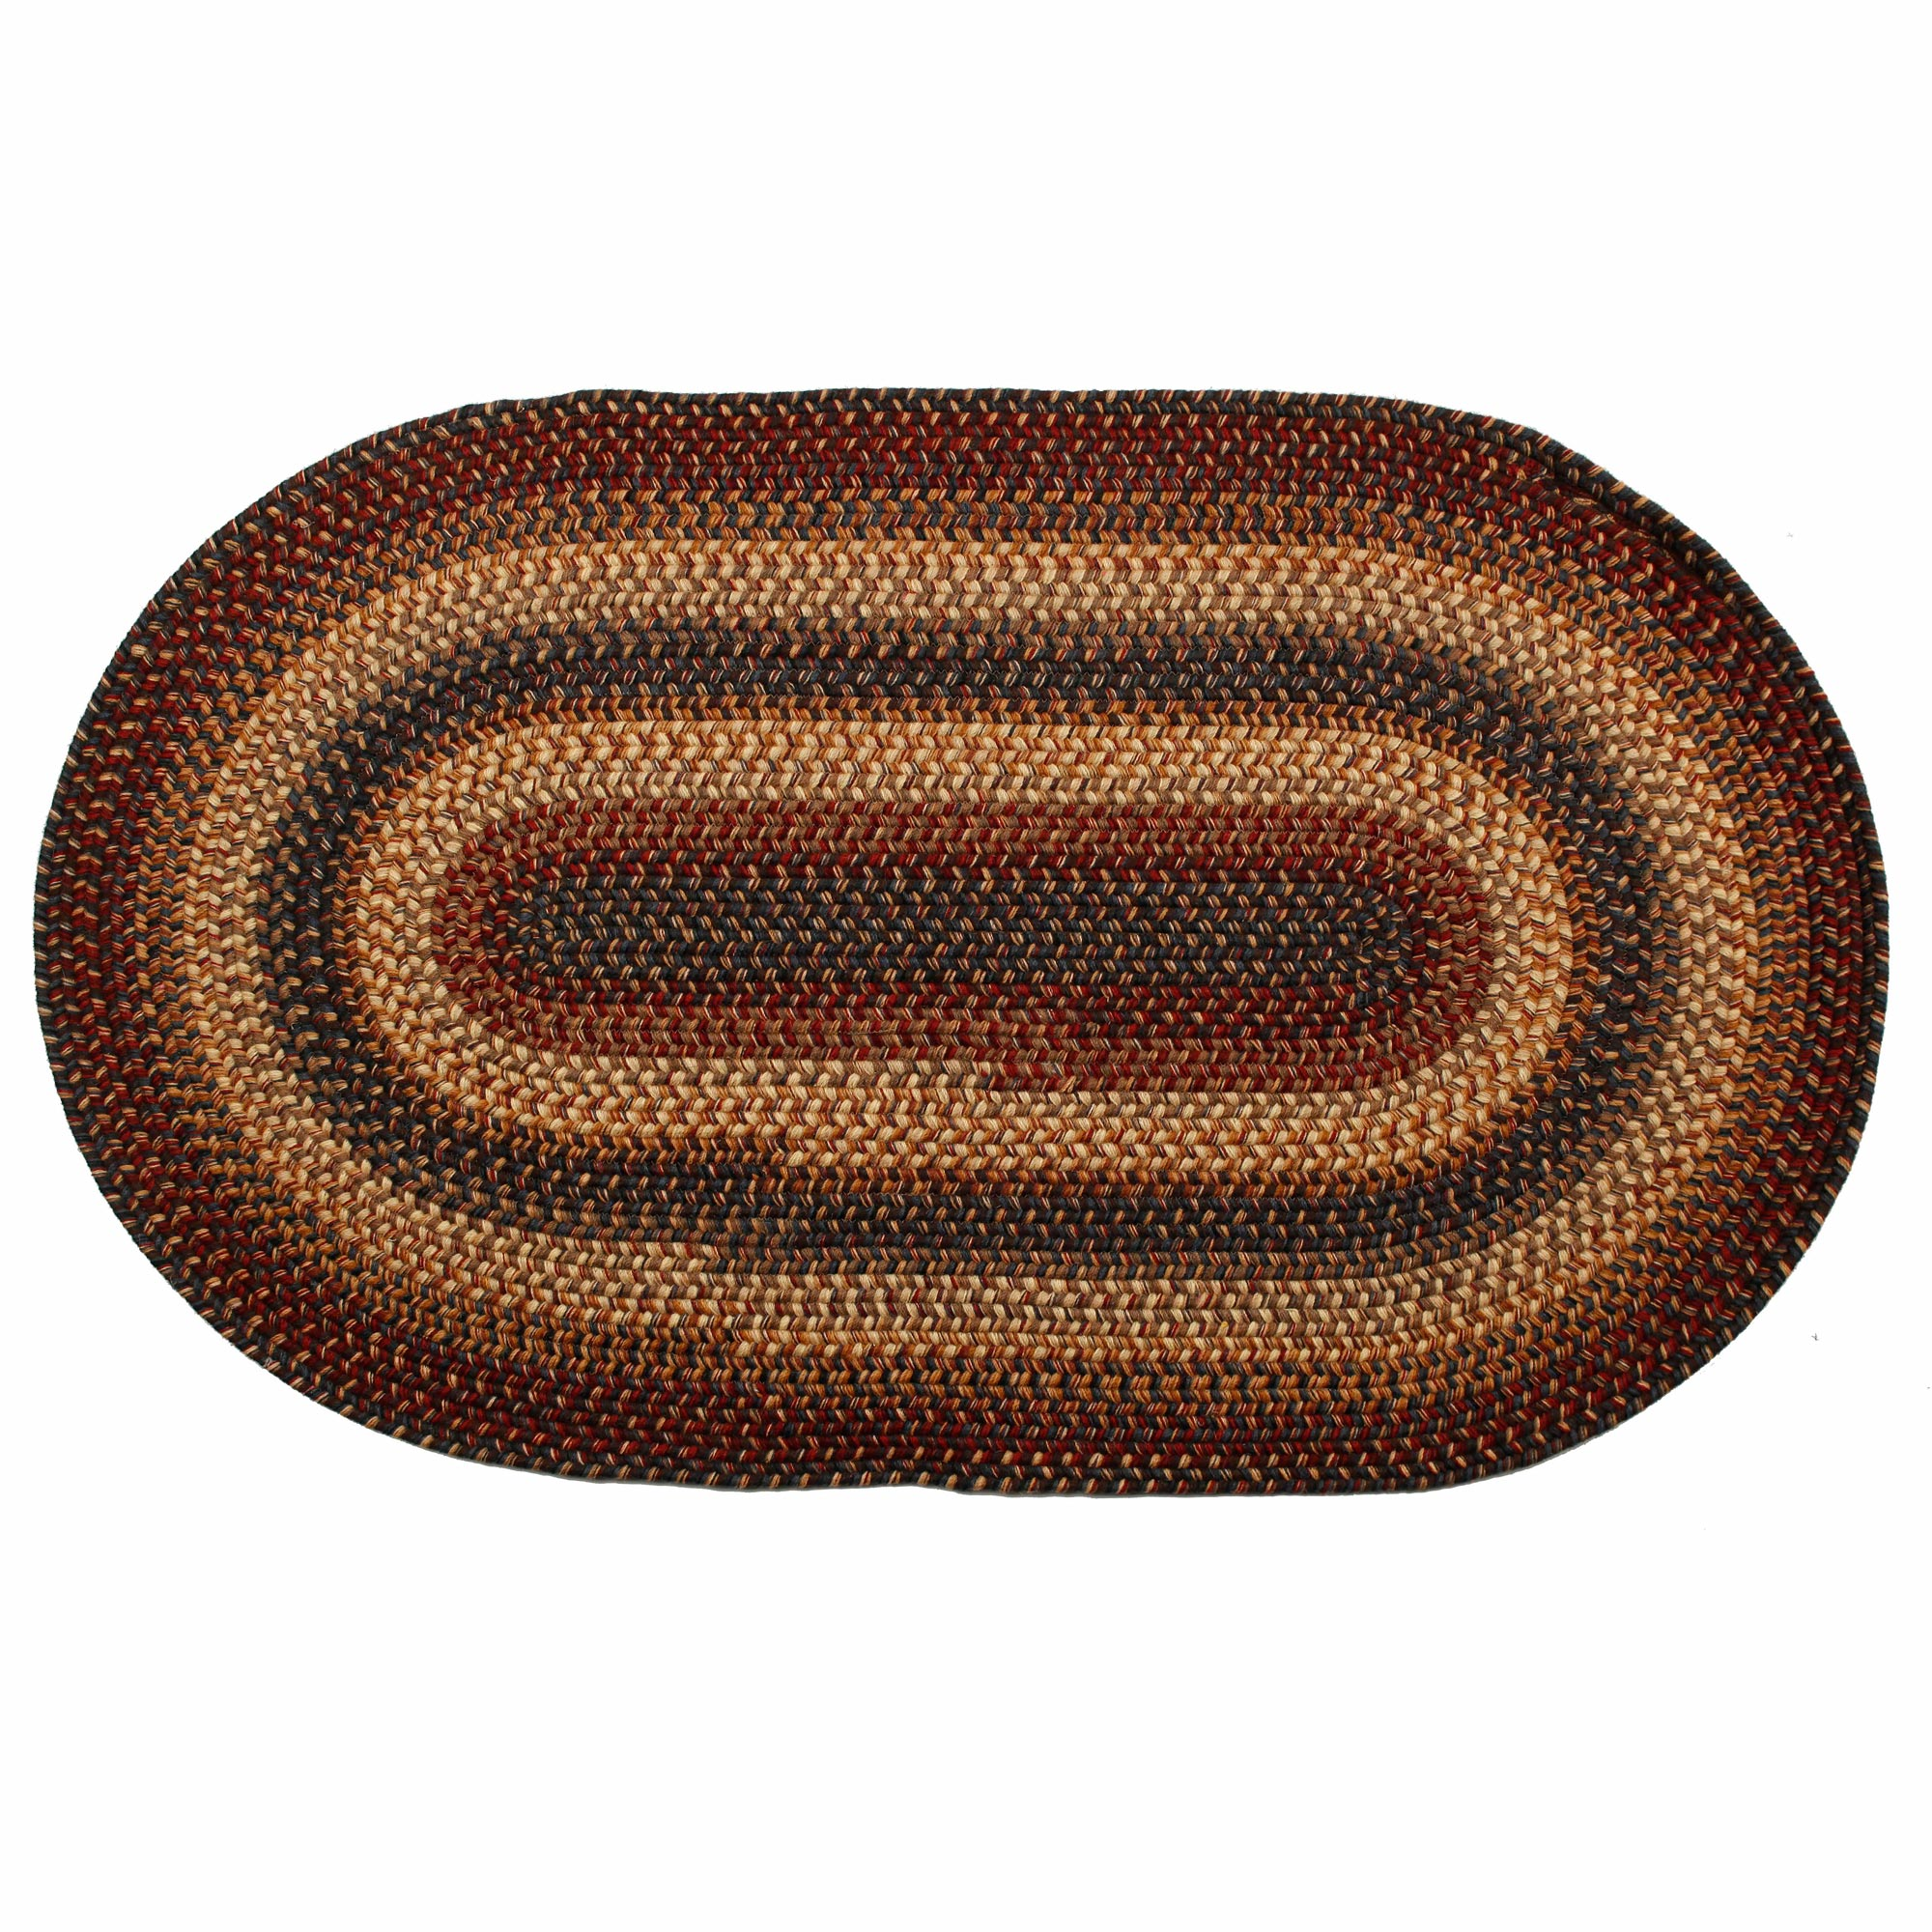 Country Primitive Wool Braided Area Rugs Oval Rectangle